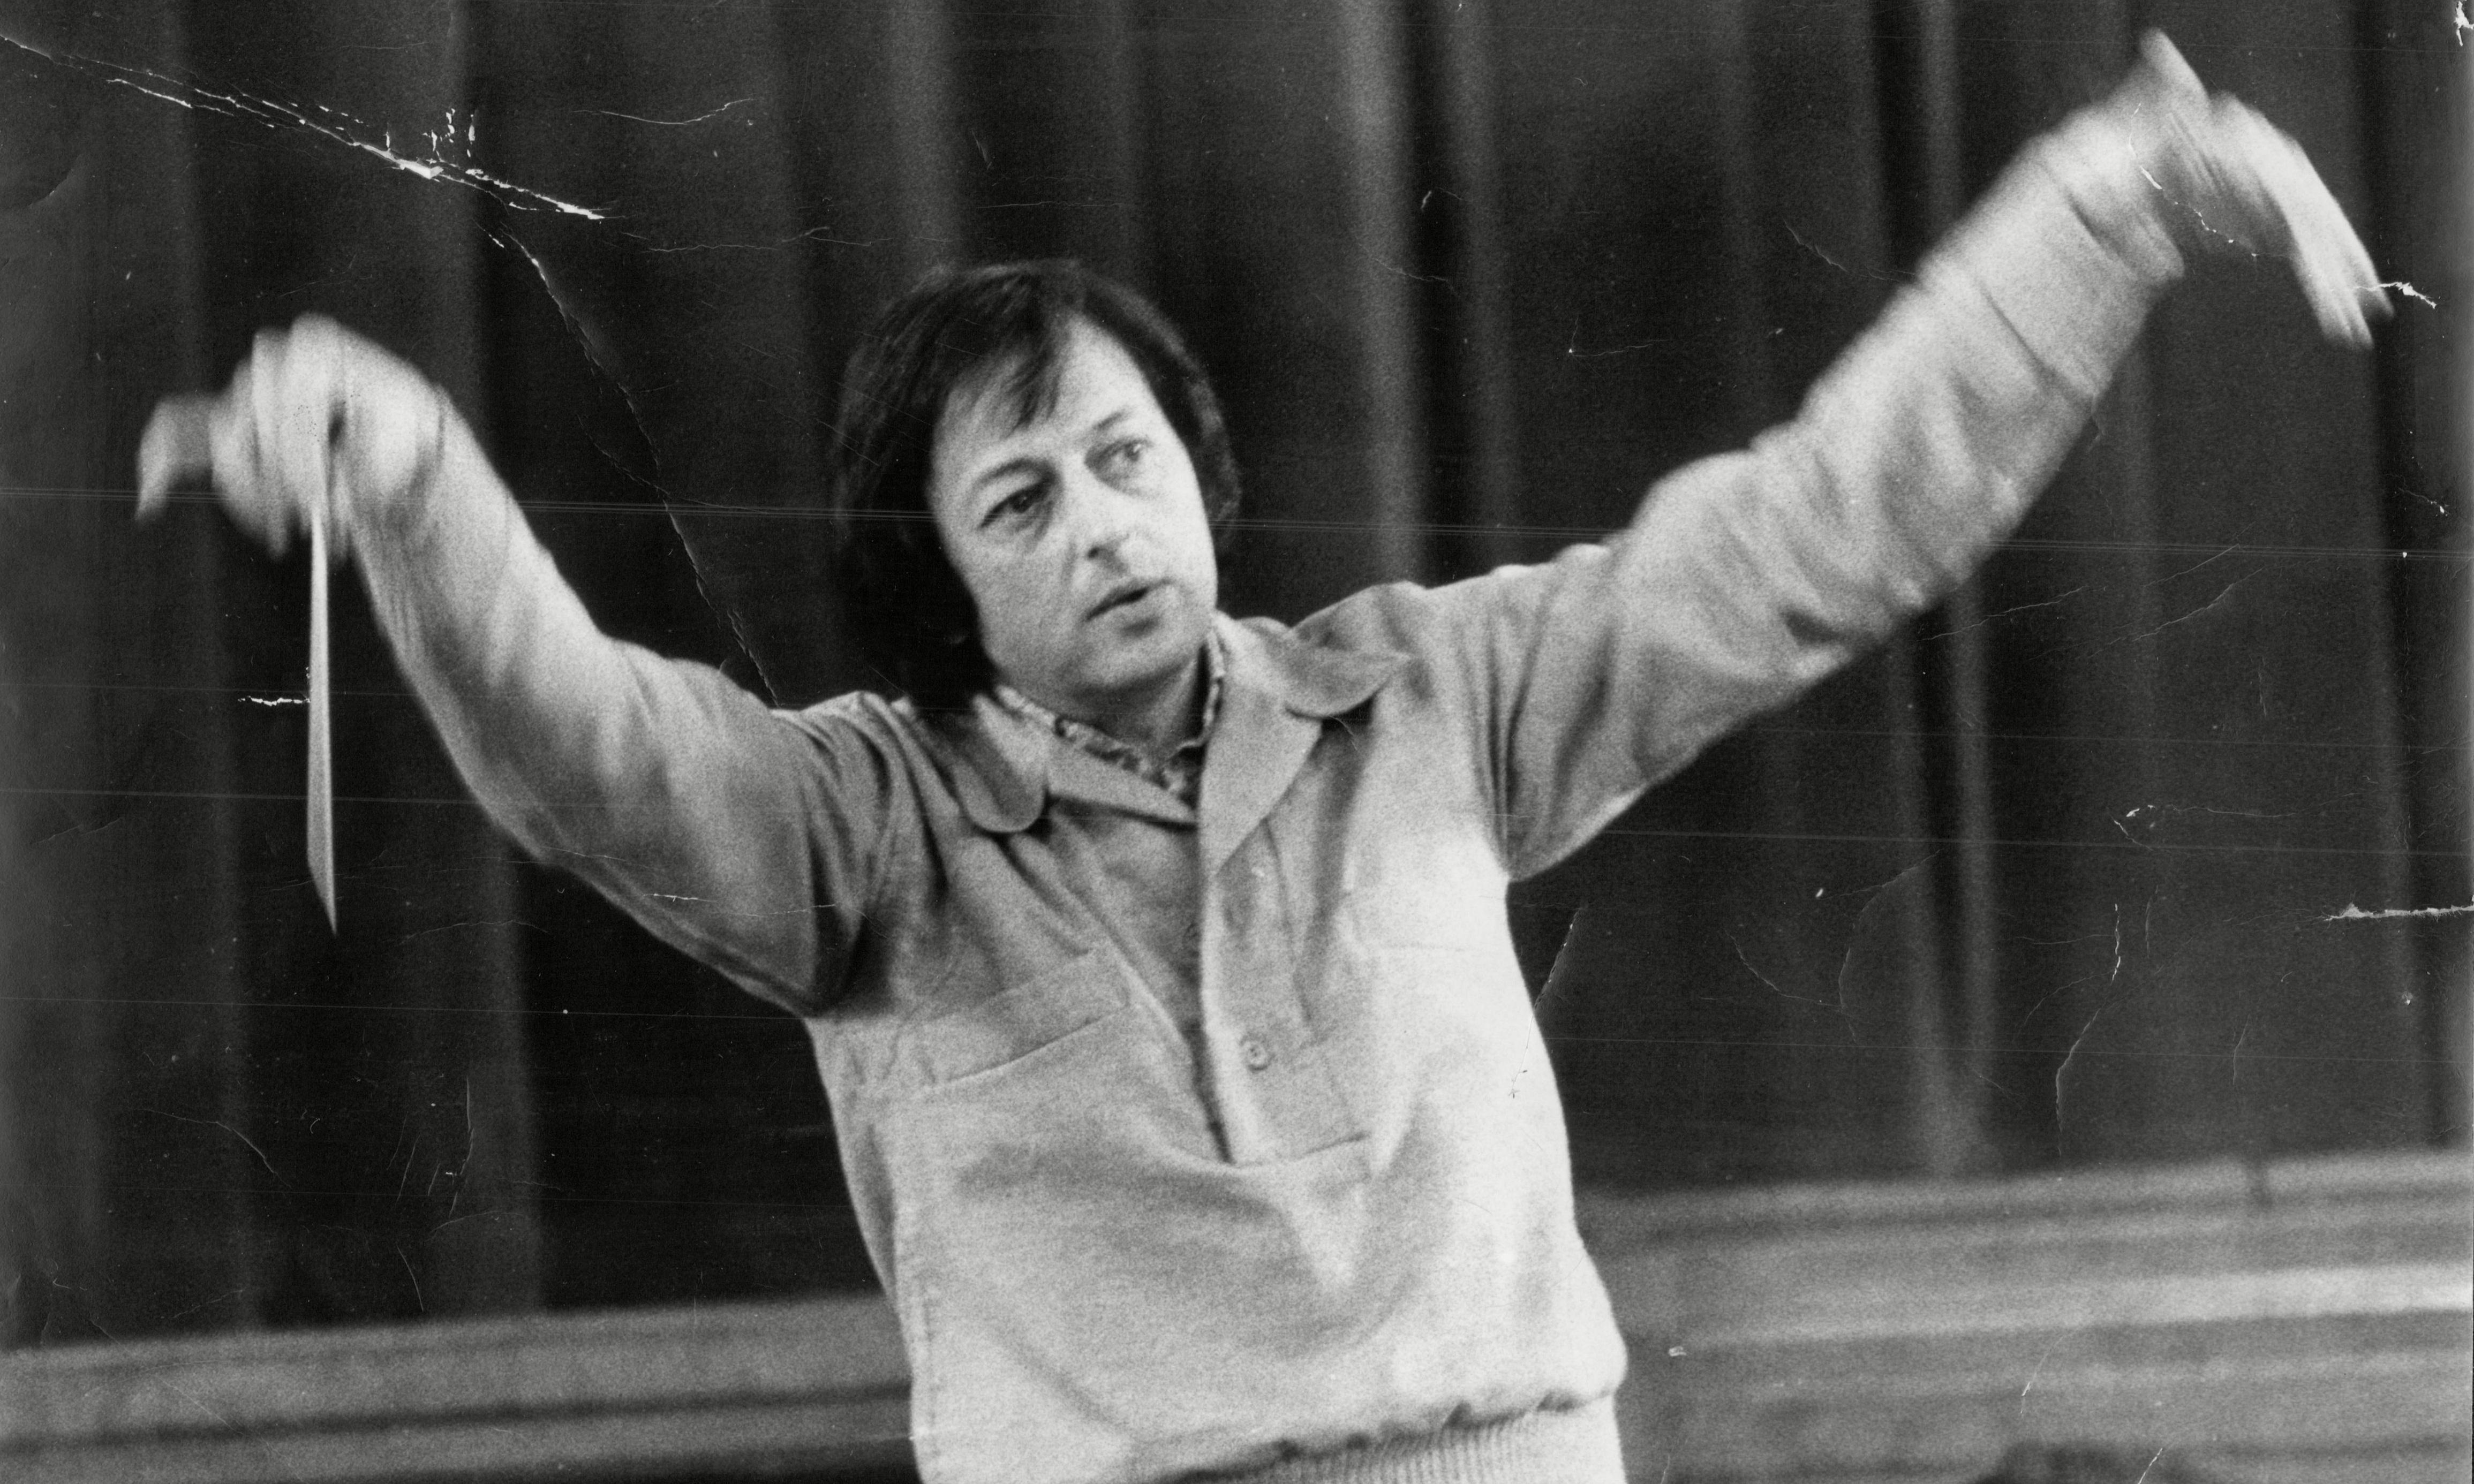 Conductor and composer André Previn dies at 89